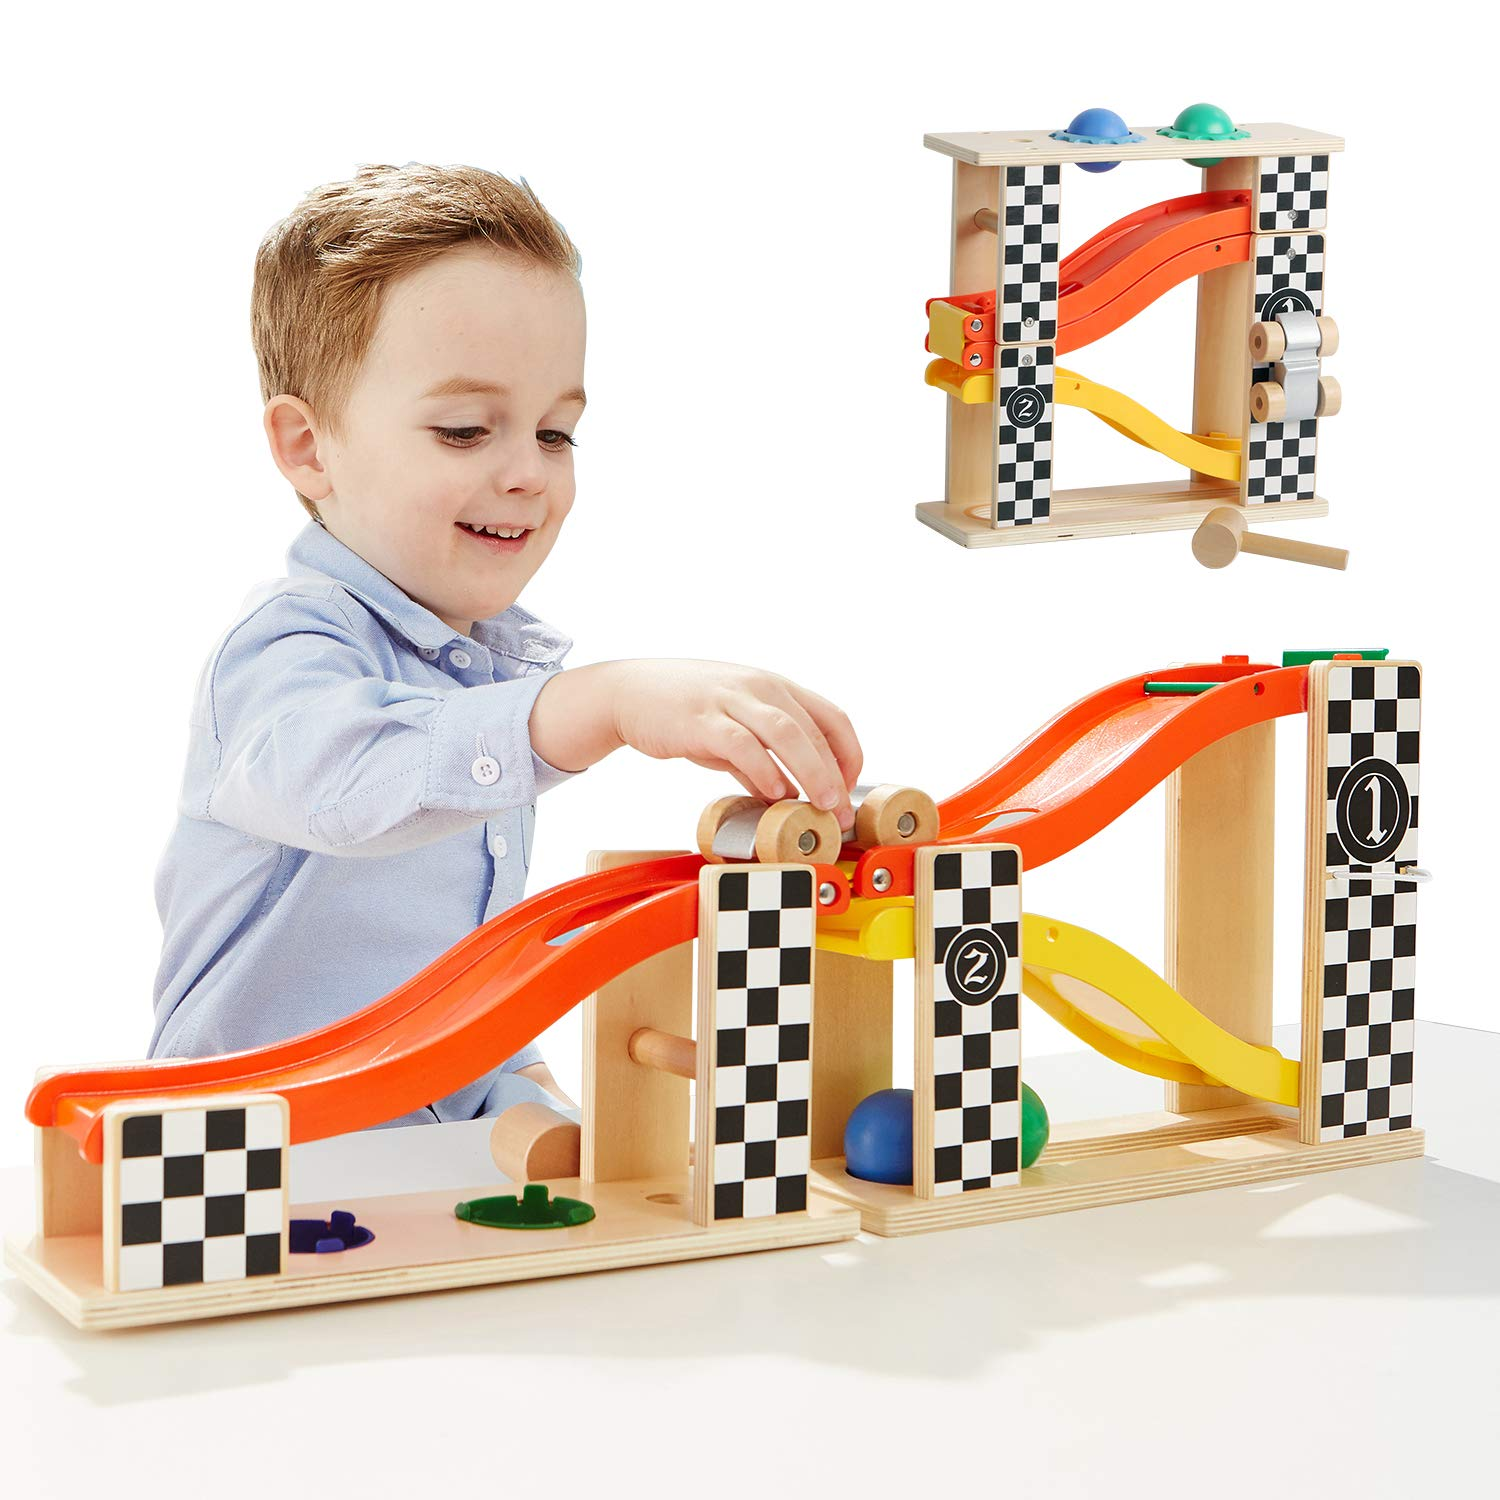 TOP BRIGHT Pound and Roll Tower Wooden Toys for 1 2 Year Old Boy Gifts with Hammer and 2 Balls